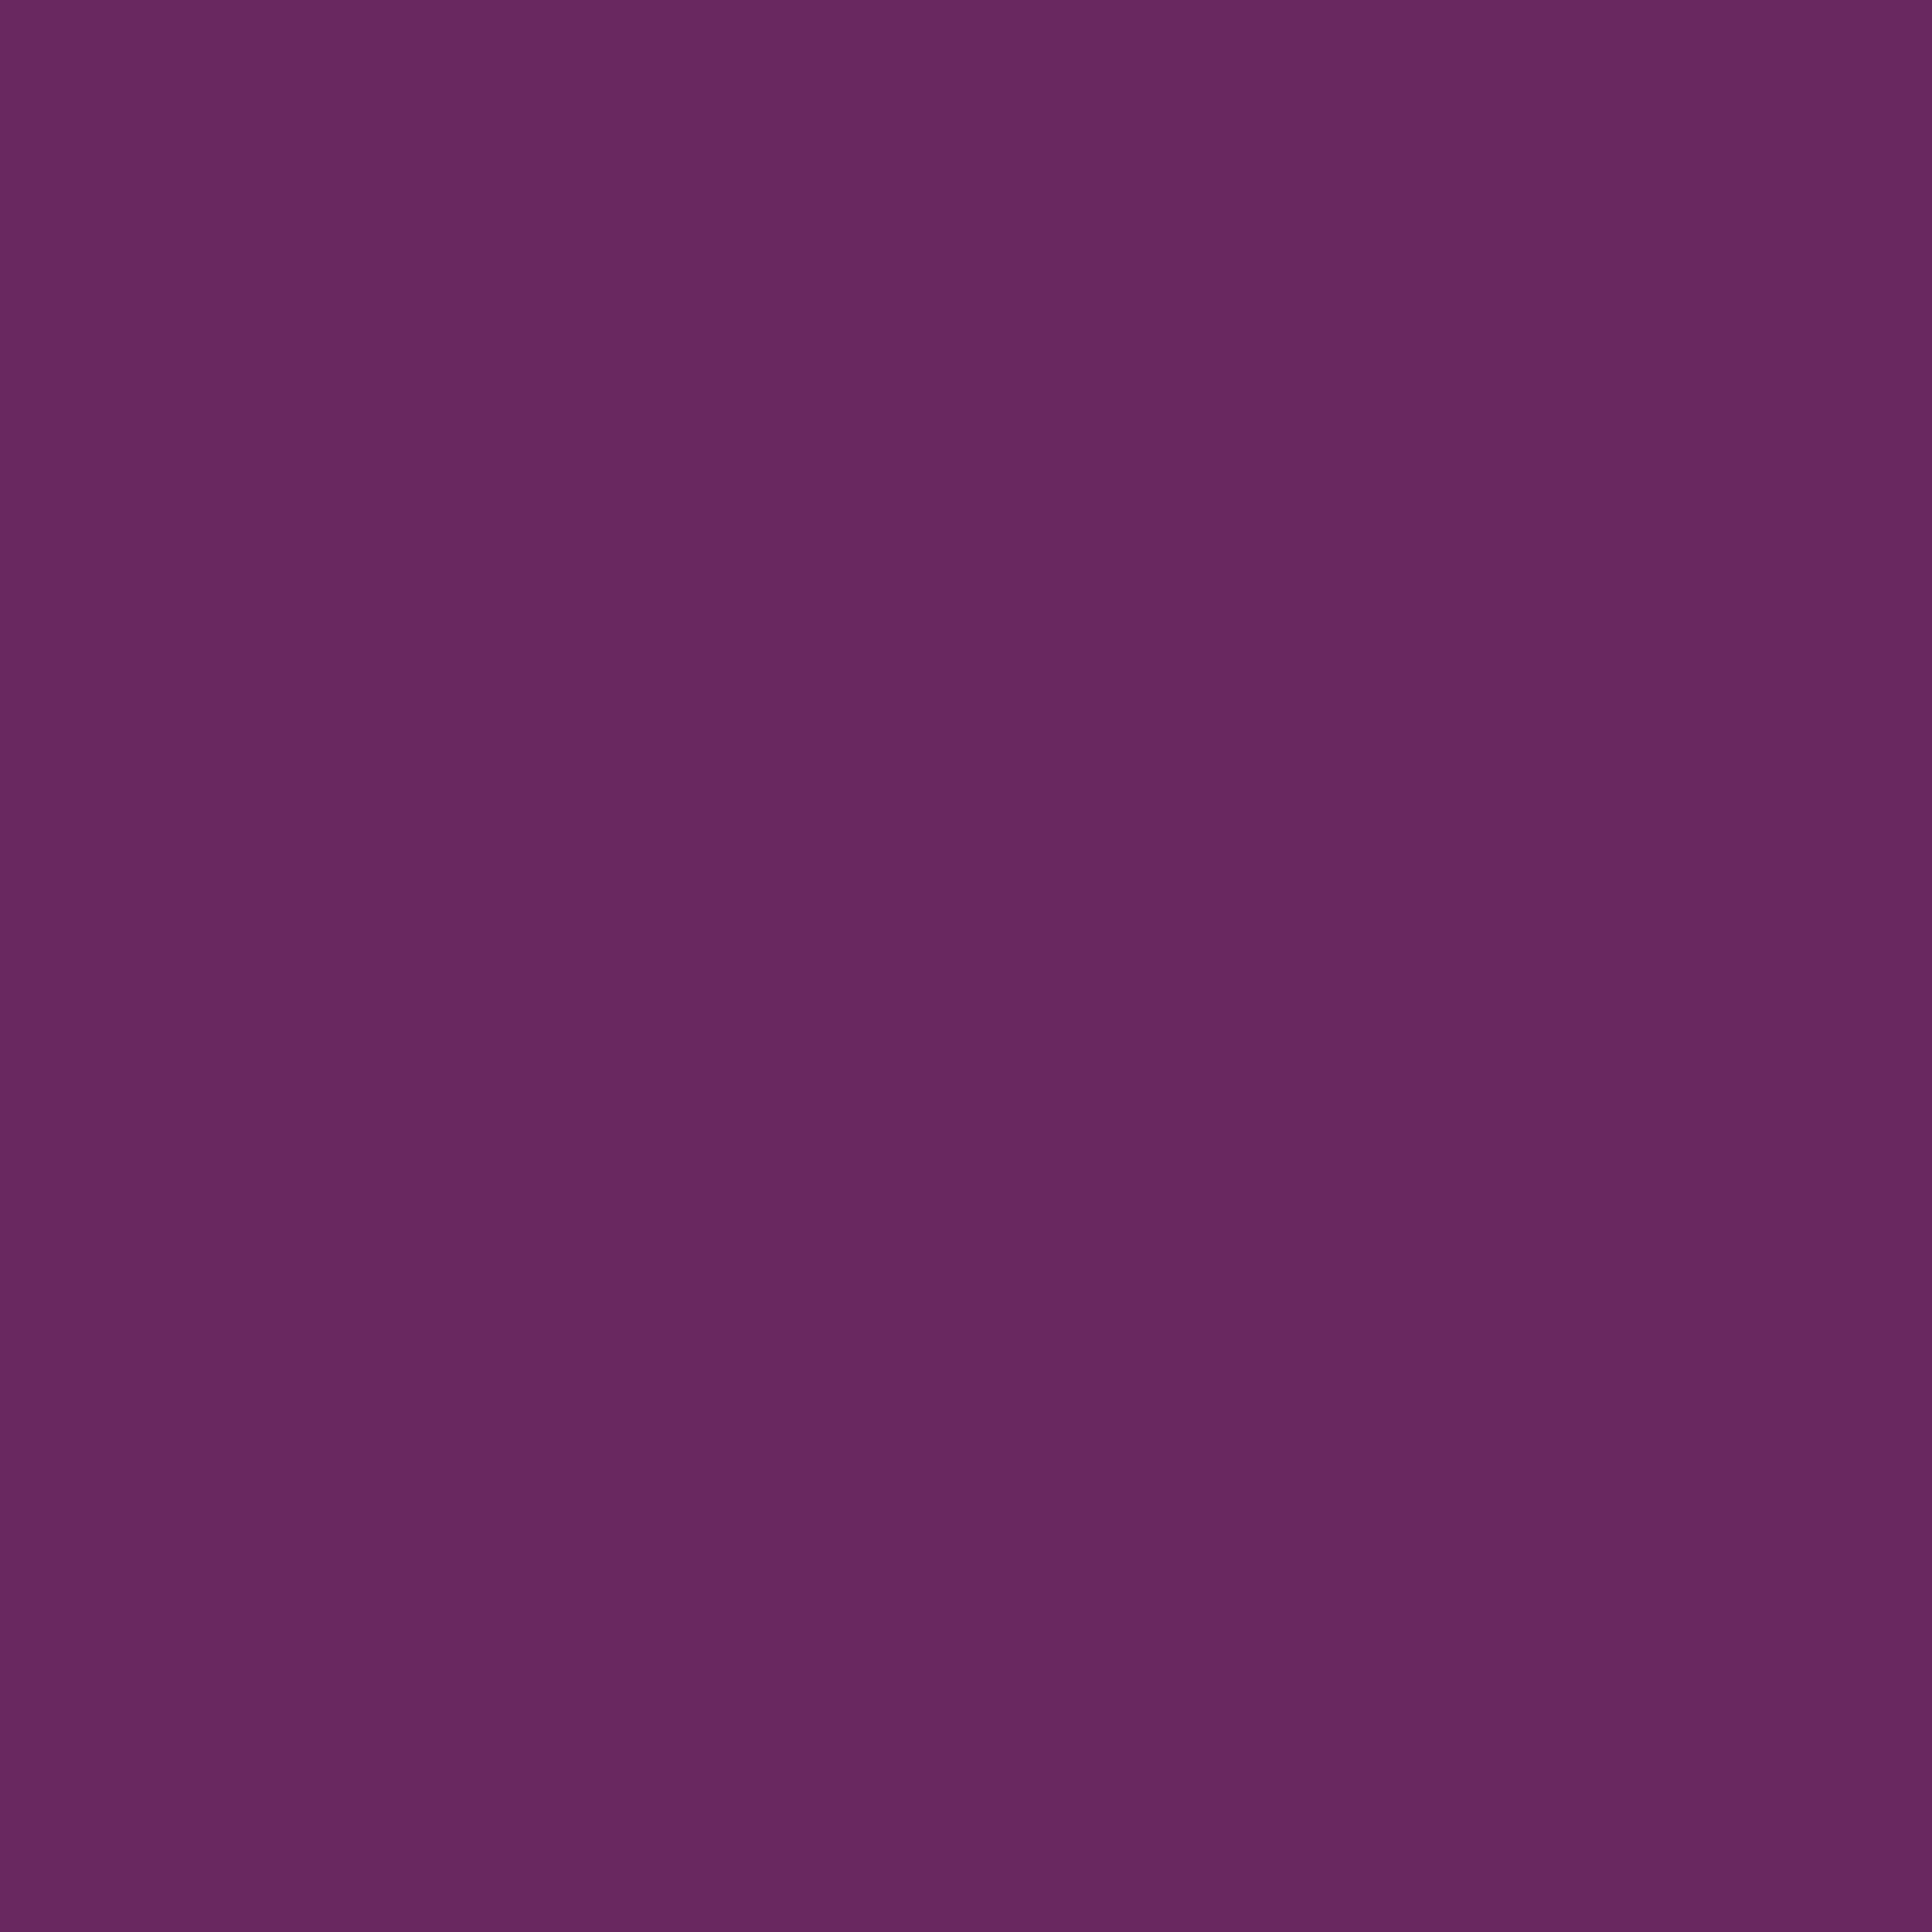 3600x3600 Palatinate Purple Solid Color Background